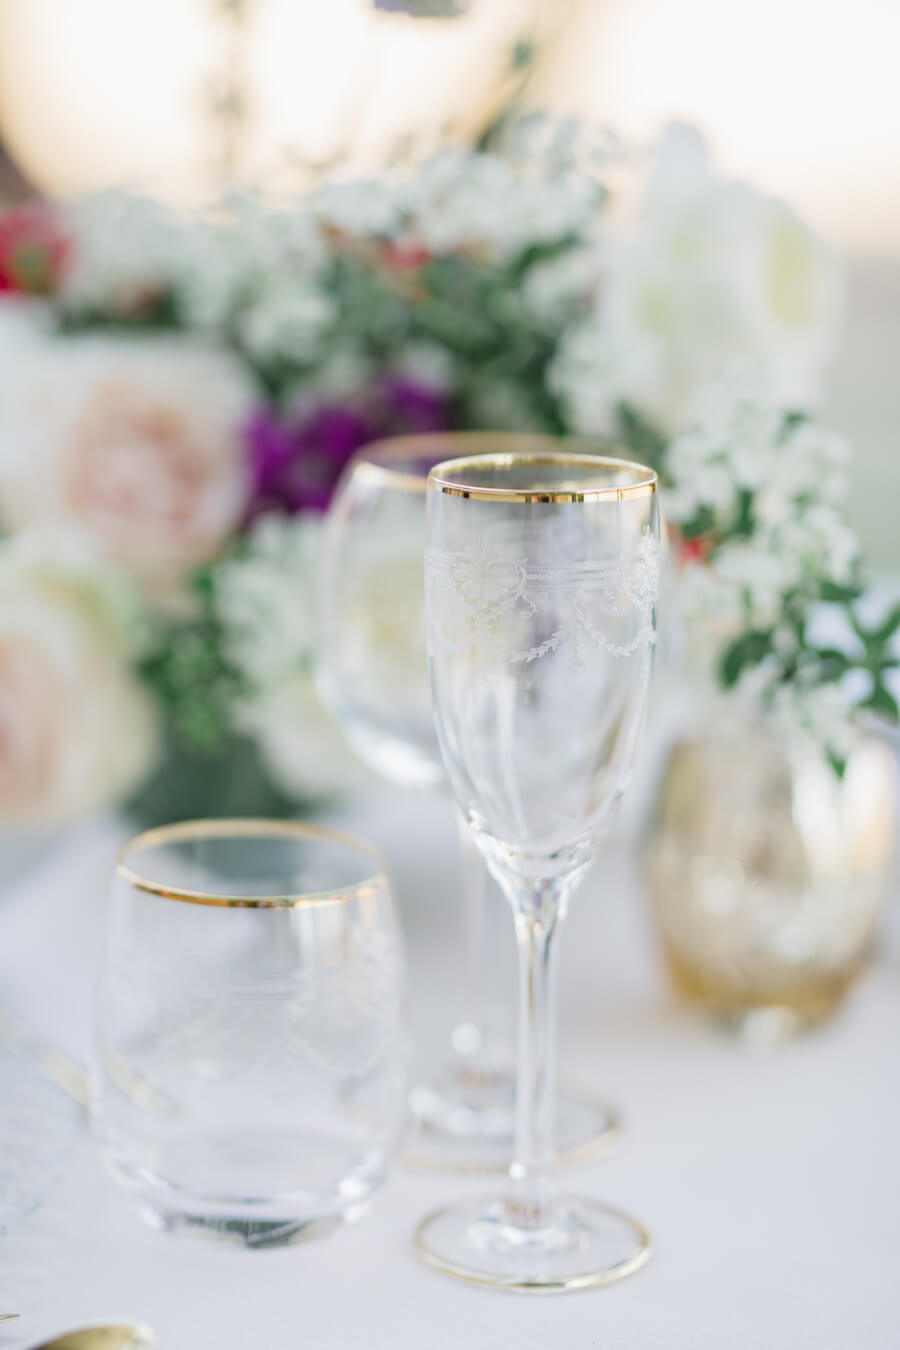 beautiful wedding decor by luxury wedding planner UK, Kimberley Rose Designs